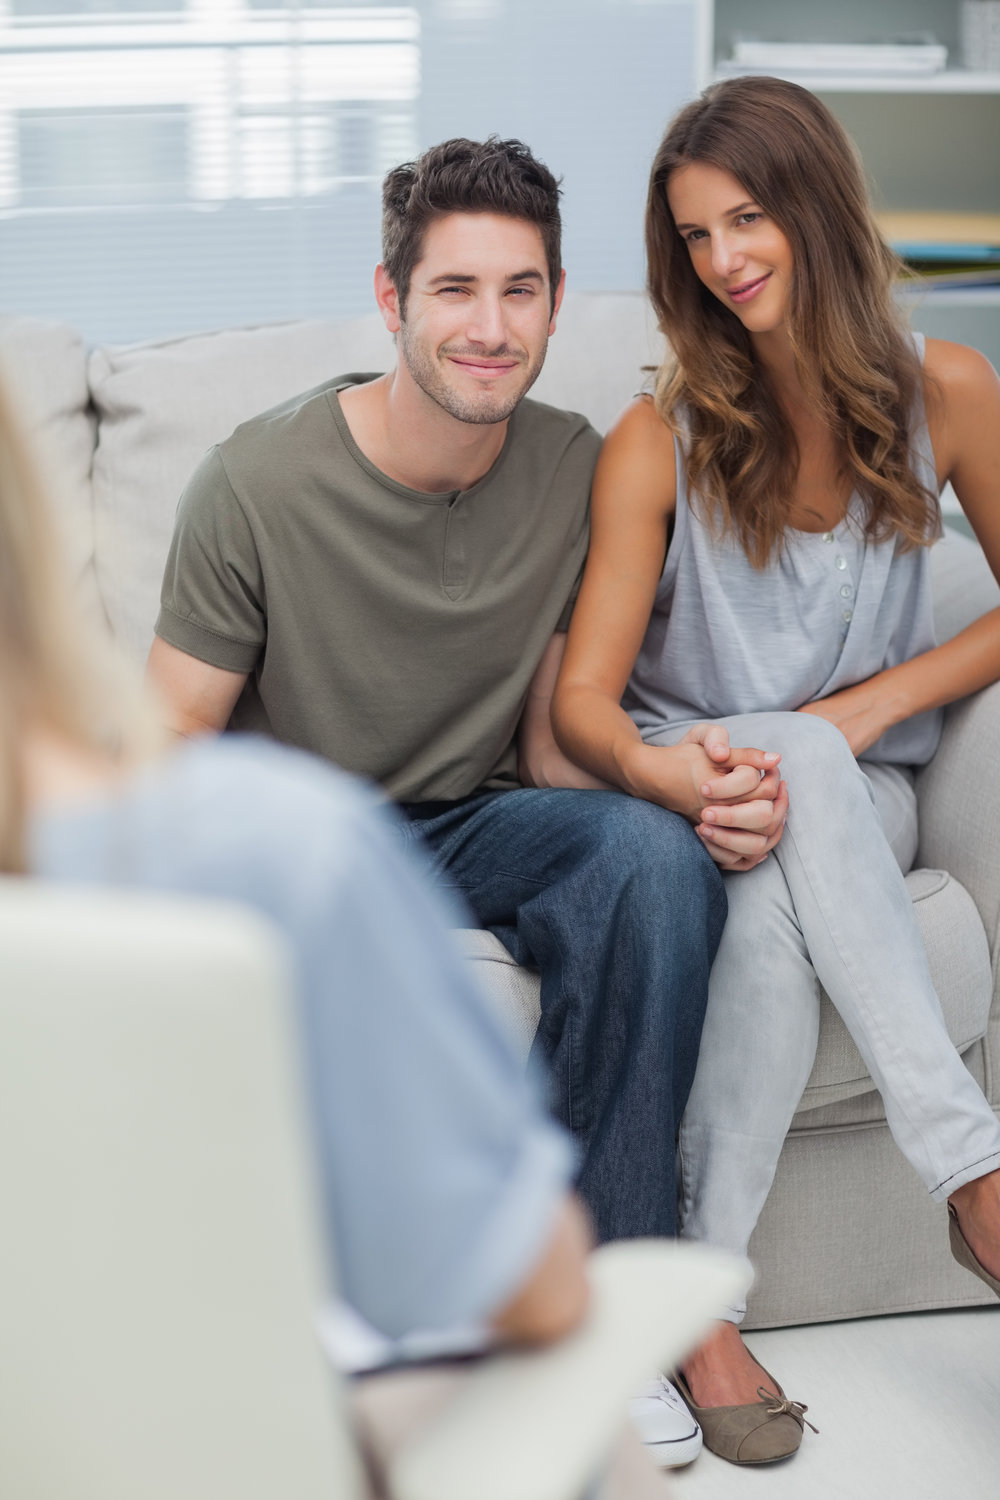 Sex therapy married couples